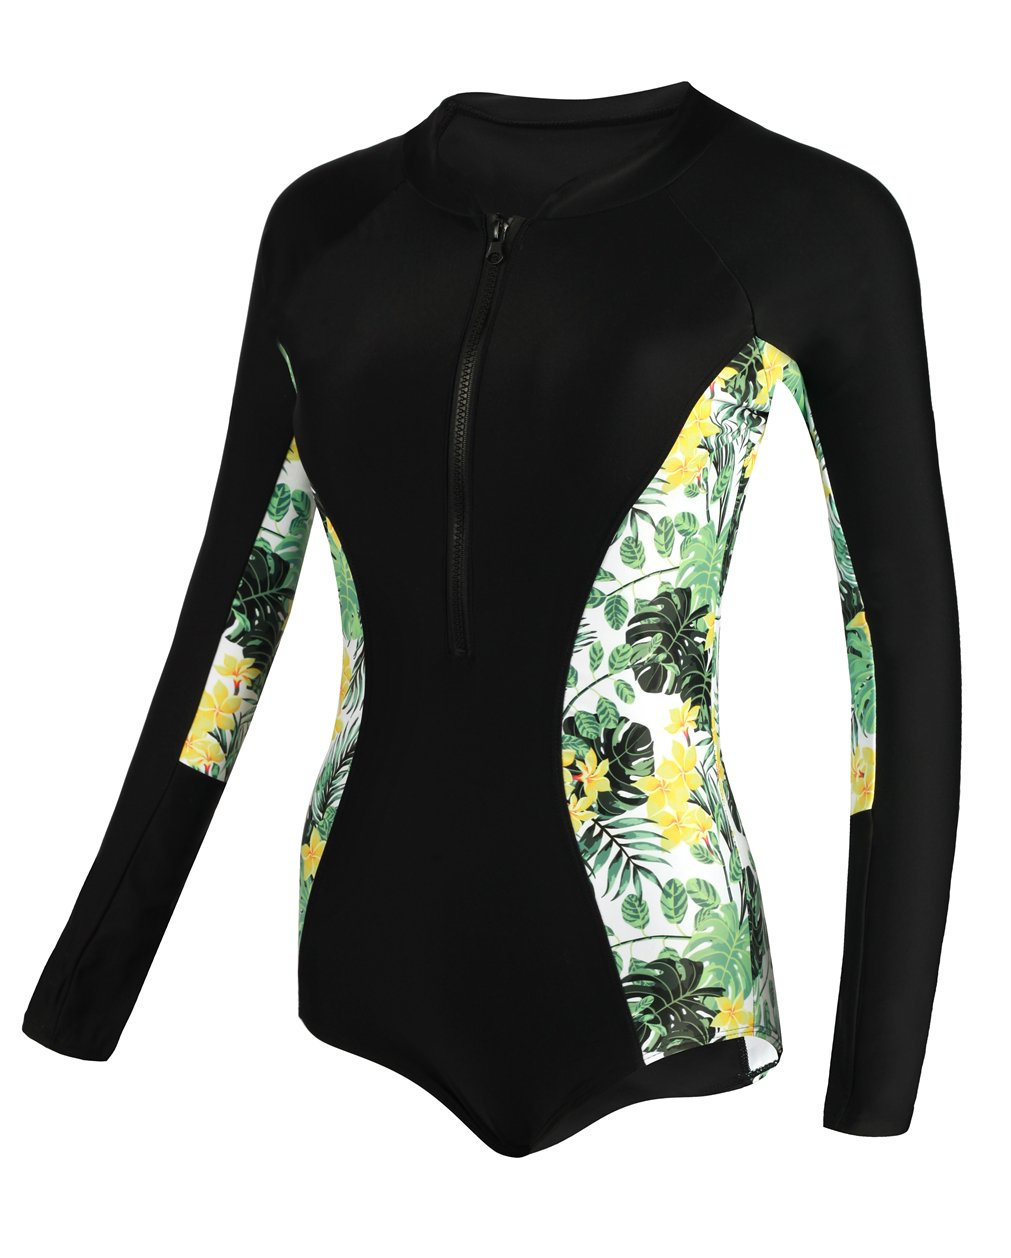 dilinte Women One Piece Swimsuit Floral Long Sleeve Sun Protection Swimsuit Rash Guard Beachwear (M, Print#6)